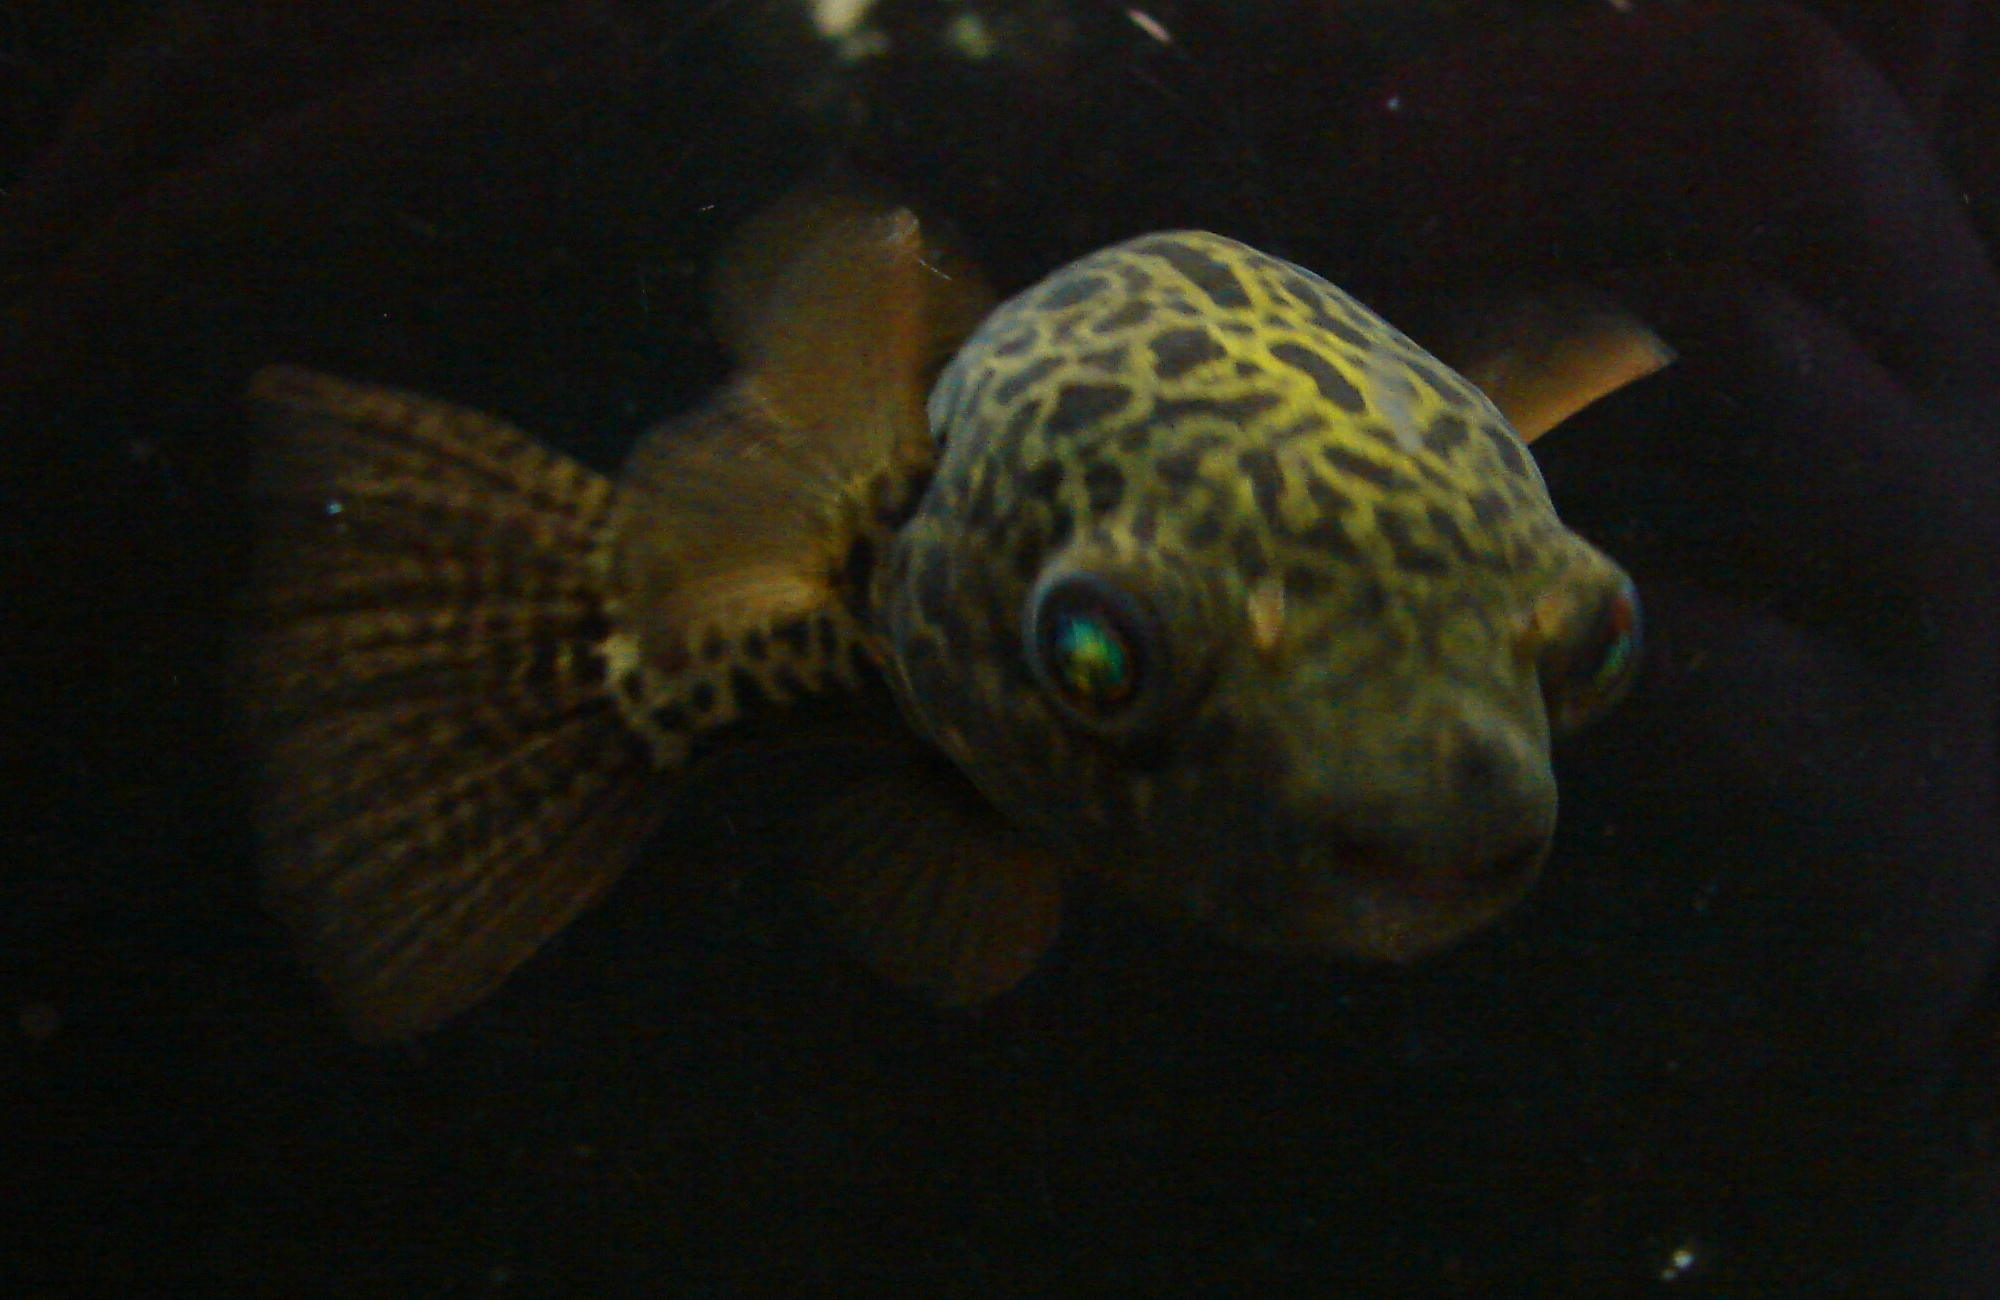 Green Spotted Puffer Fish 1 by FantasyStock on DeviantArt